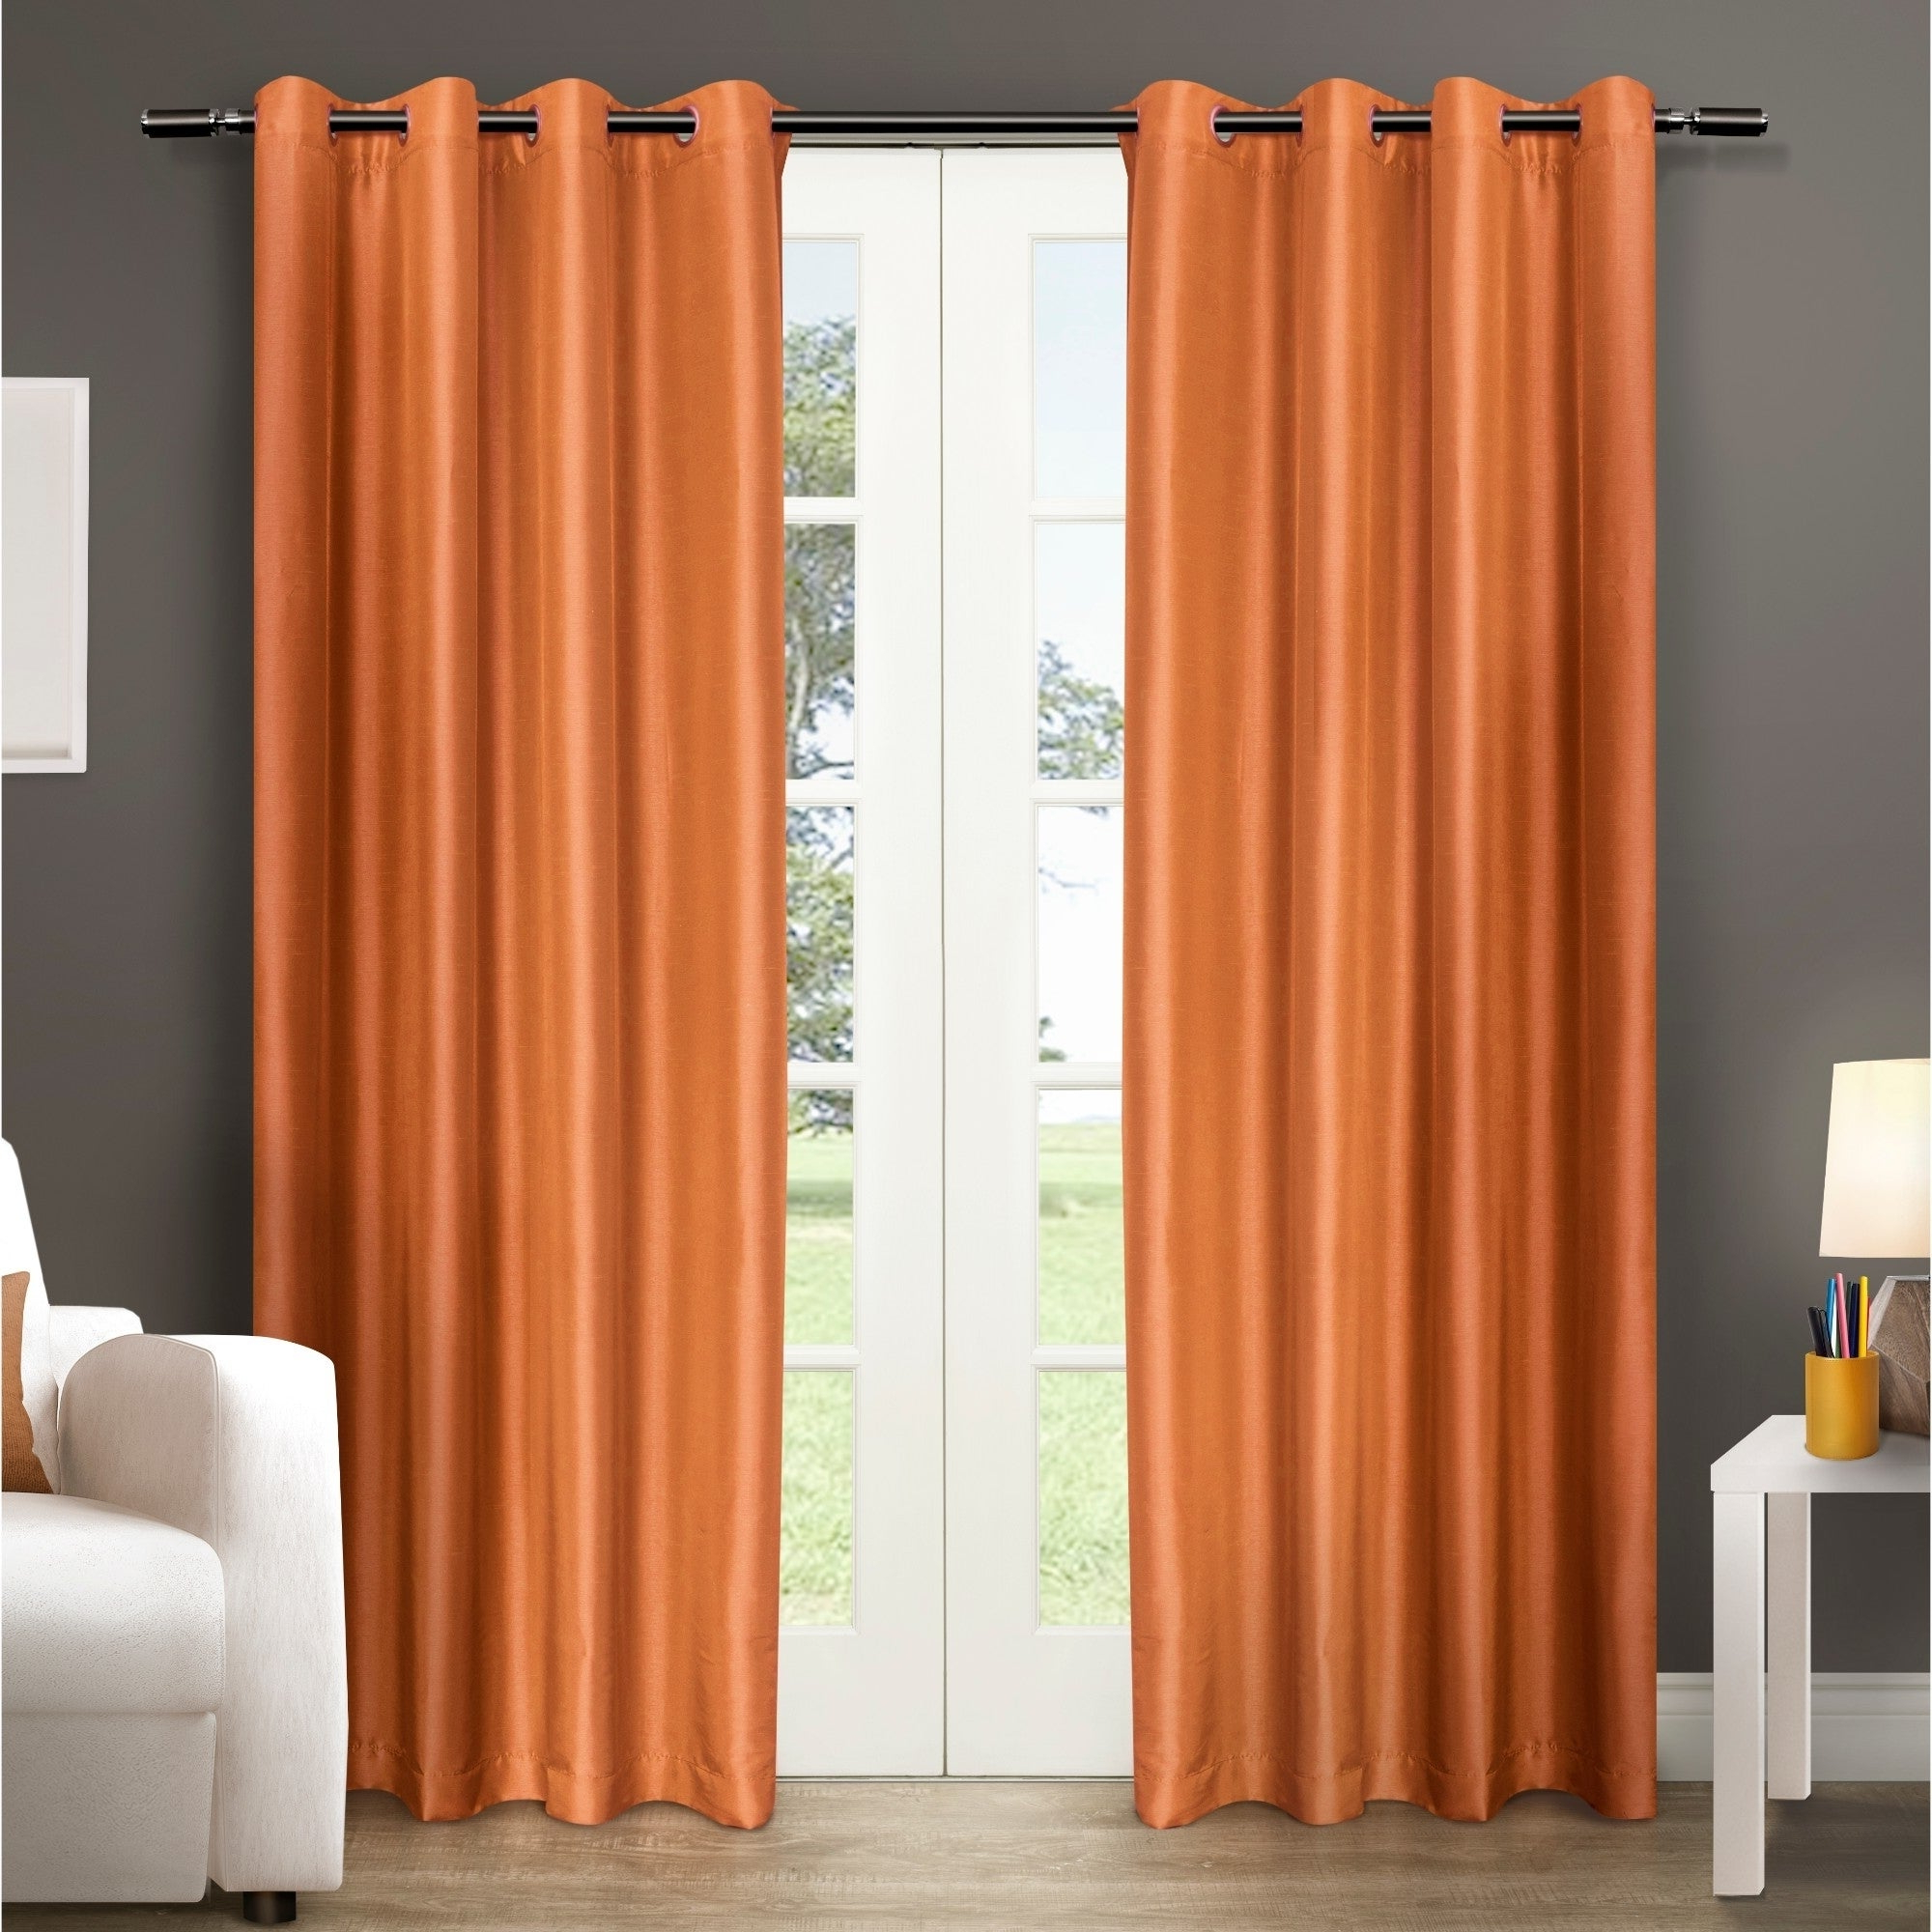 Most Popular Copper Grove Fulgence Faux Silk Grommet Top Panel Curtains – N/ A In Copper Grove Fulgence Faux Silk Grommet Top Panel Curtains (View 12 of 20)